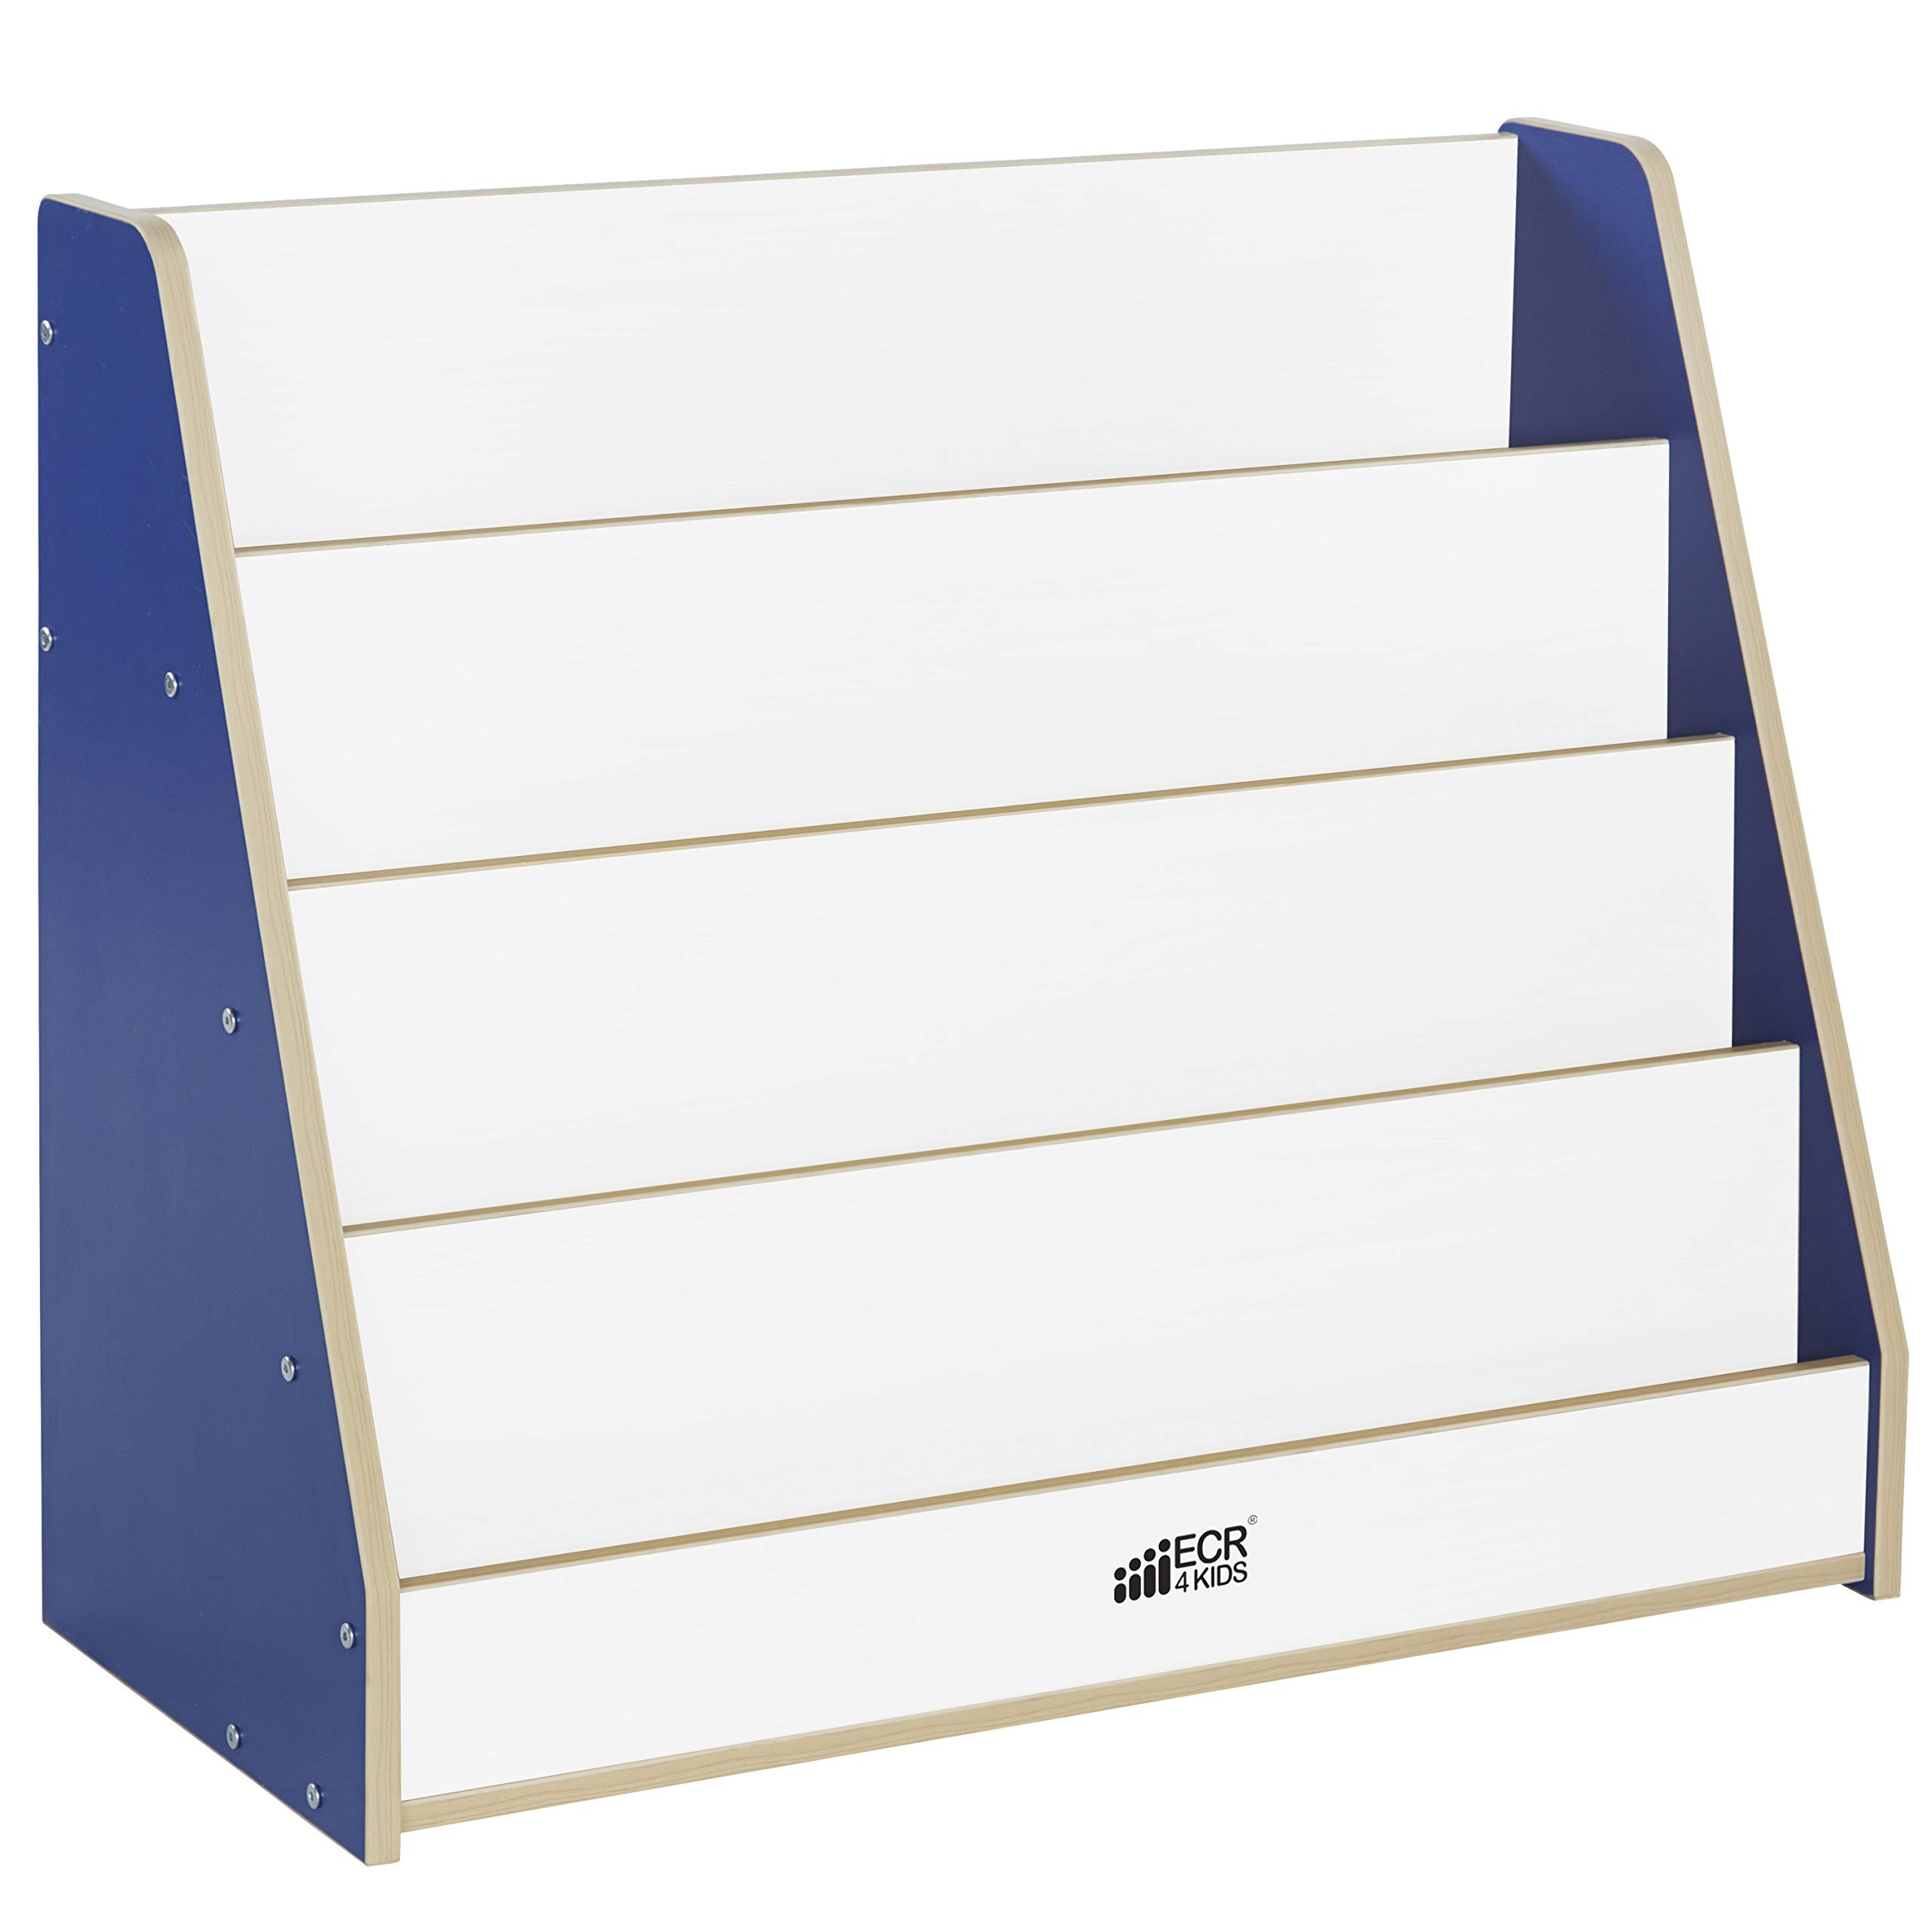 Colorful Essentials Big Book Display Stand - White/Blue by Factory Direct Partners